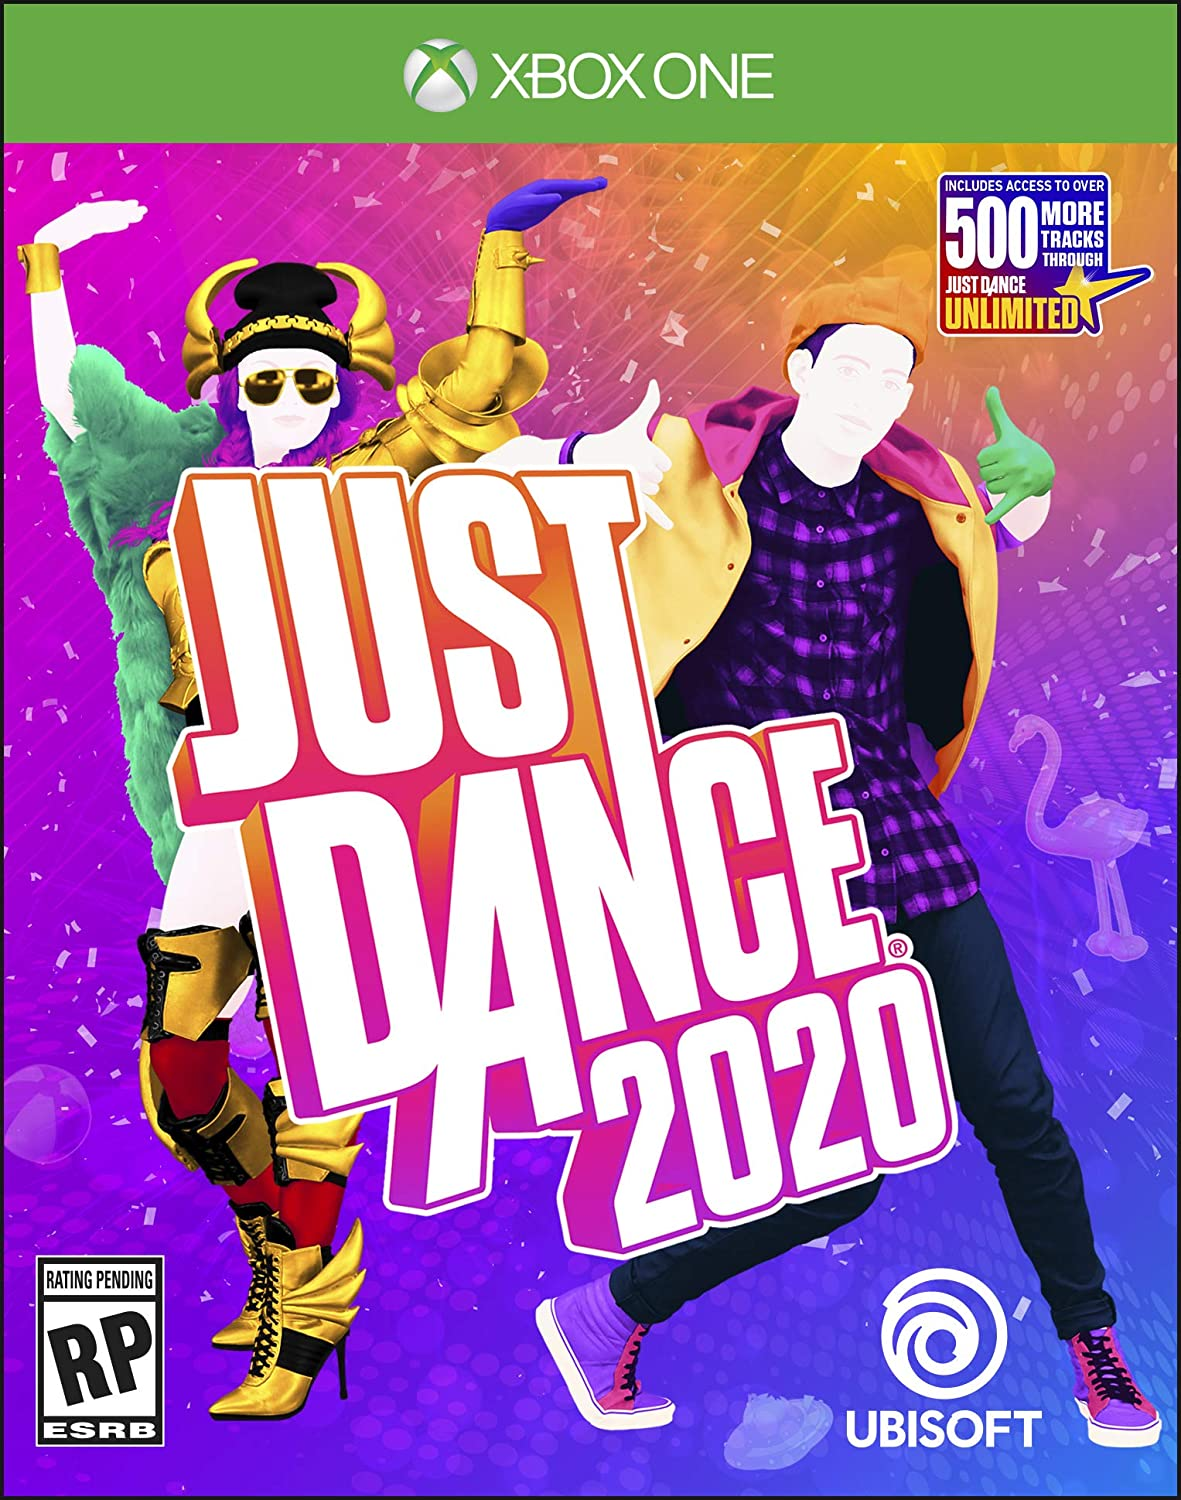 Xbox Free Games June 2020.Amazon Com Just Dance 2020 Xbox One Standard Edition